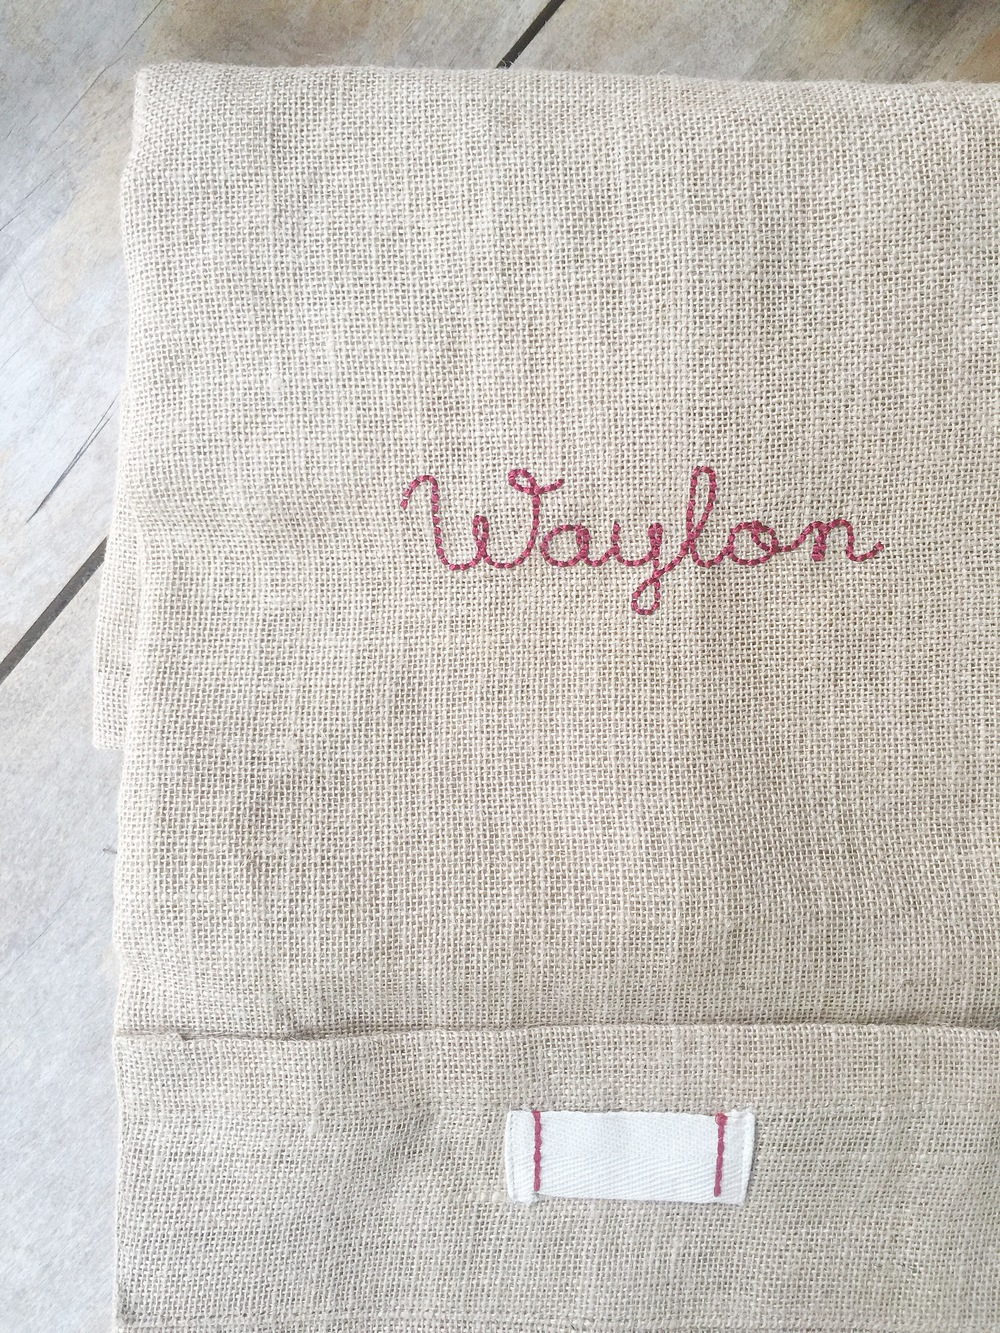 Hand-Stitched Script (name)